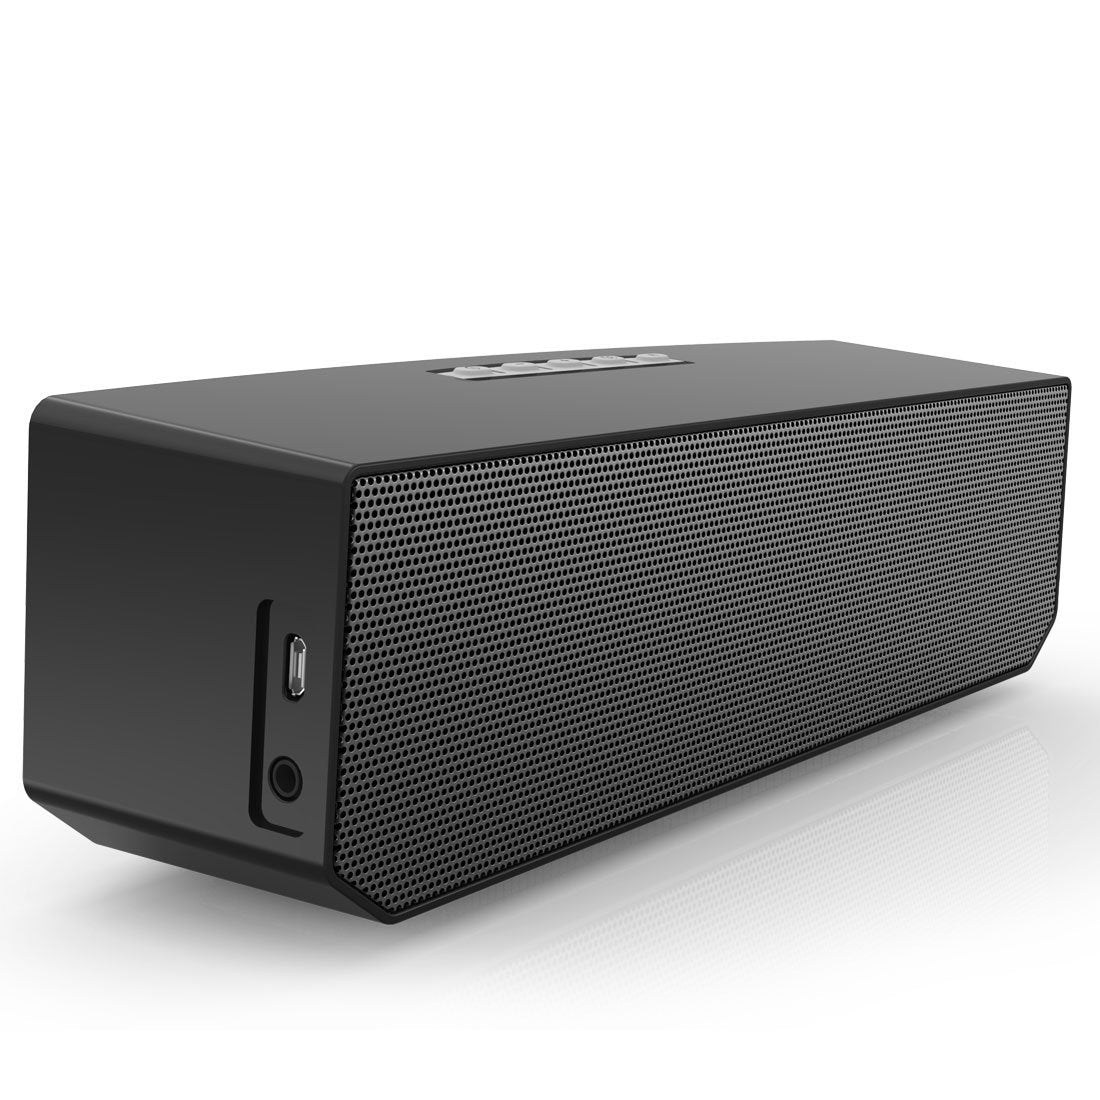 Bluedio BS-3 Boombox Portable Wireless Bluetooth Speaker - Black | Monthly Madness